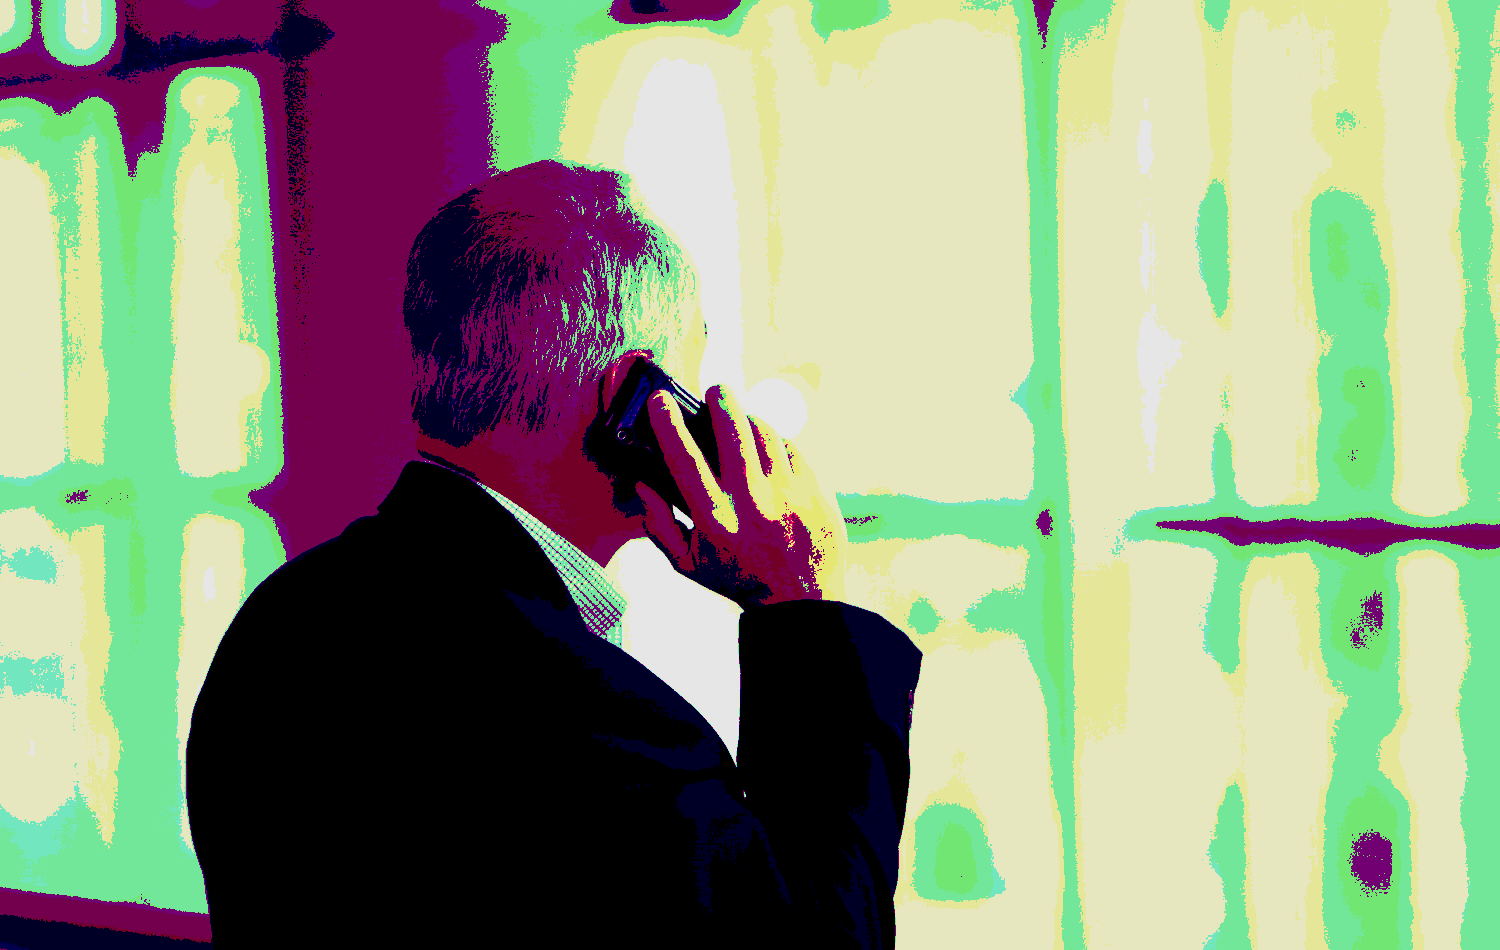 Malware uses underground call centers to trick users into infecting themselves